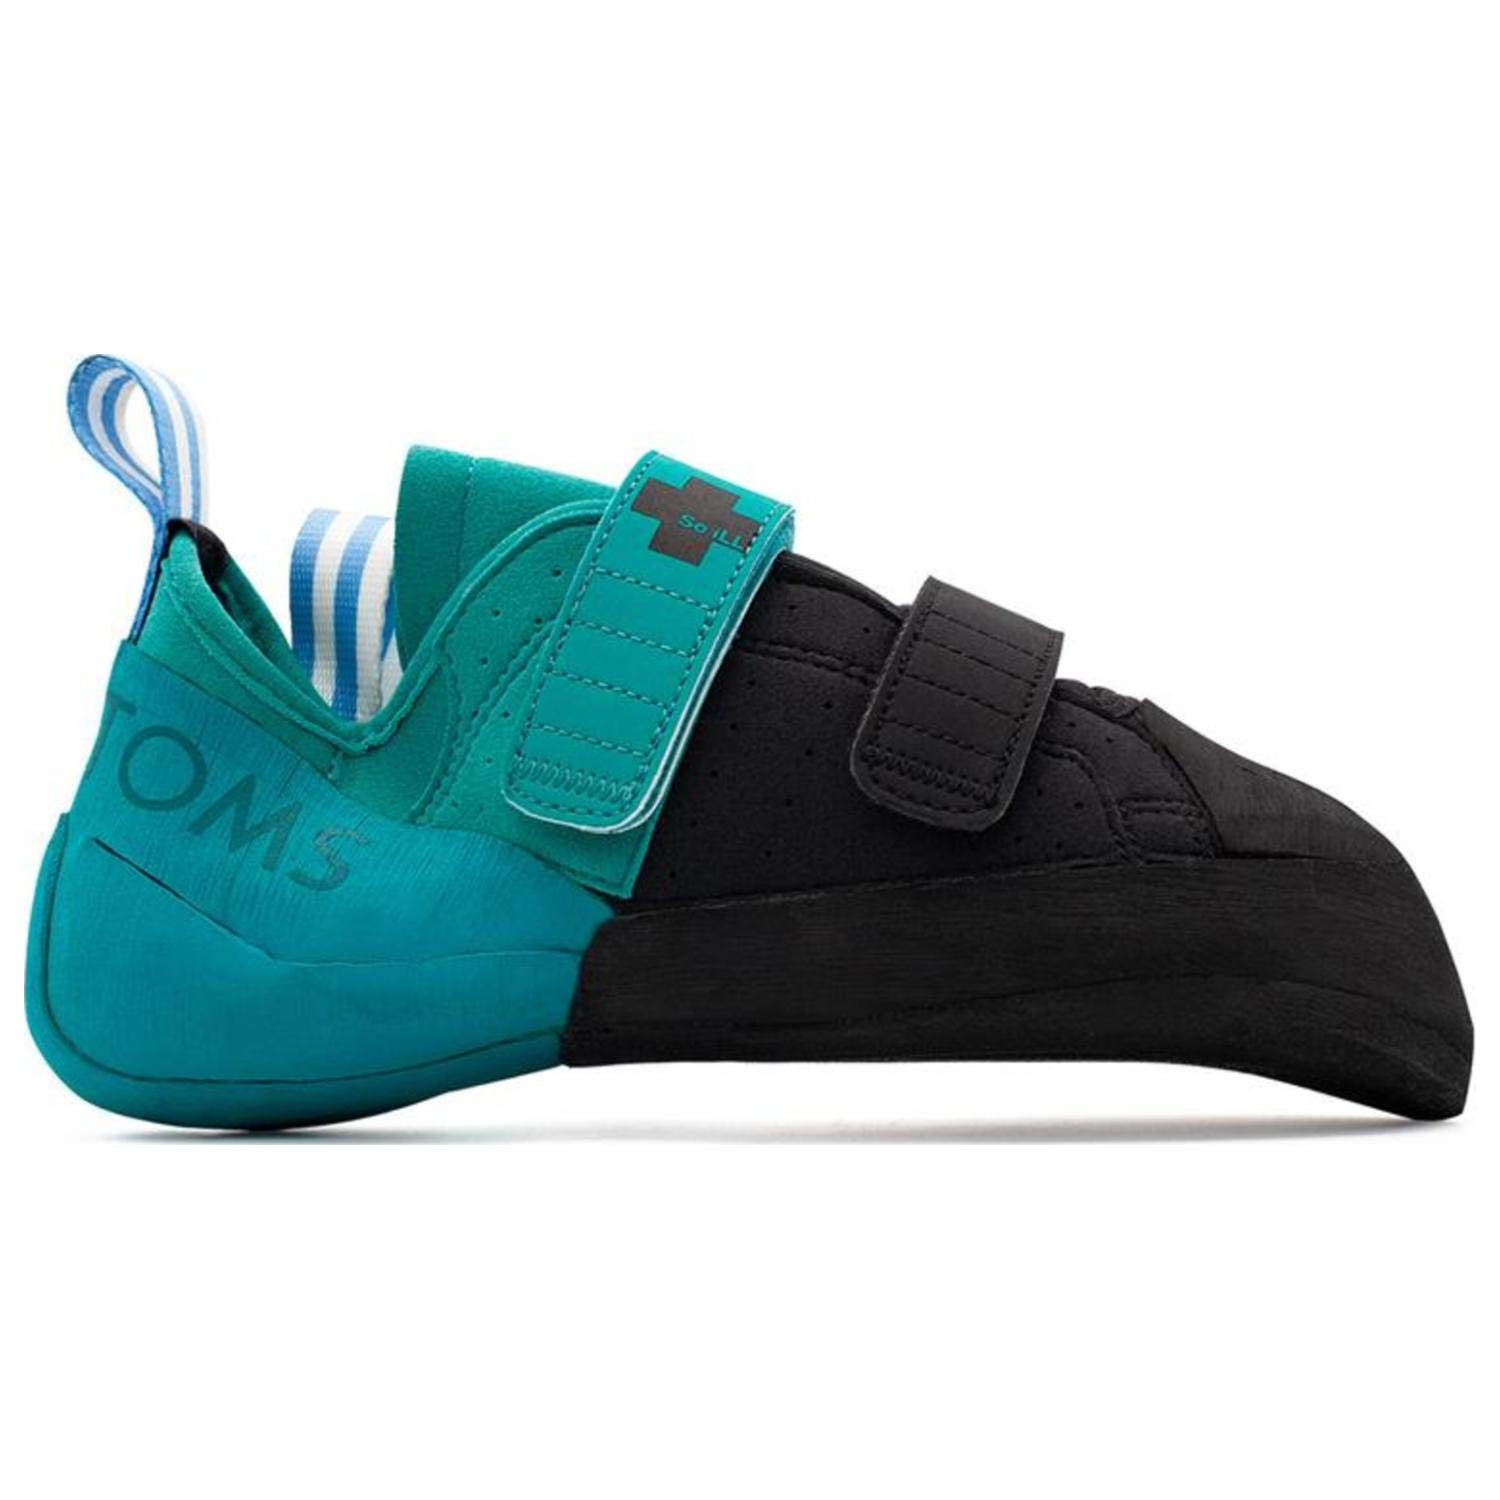 So iLL x Toms LV Climbing Shoe (6.5) Green by So iLL